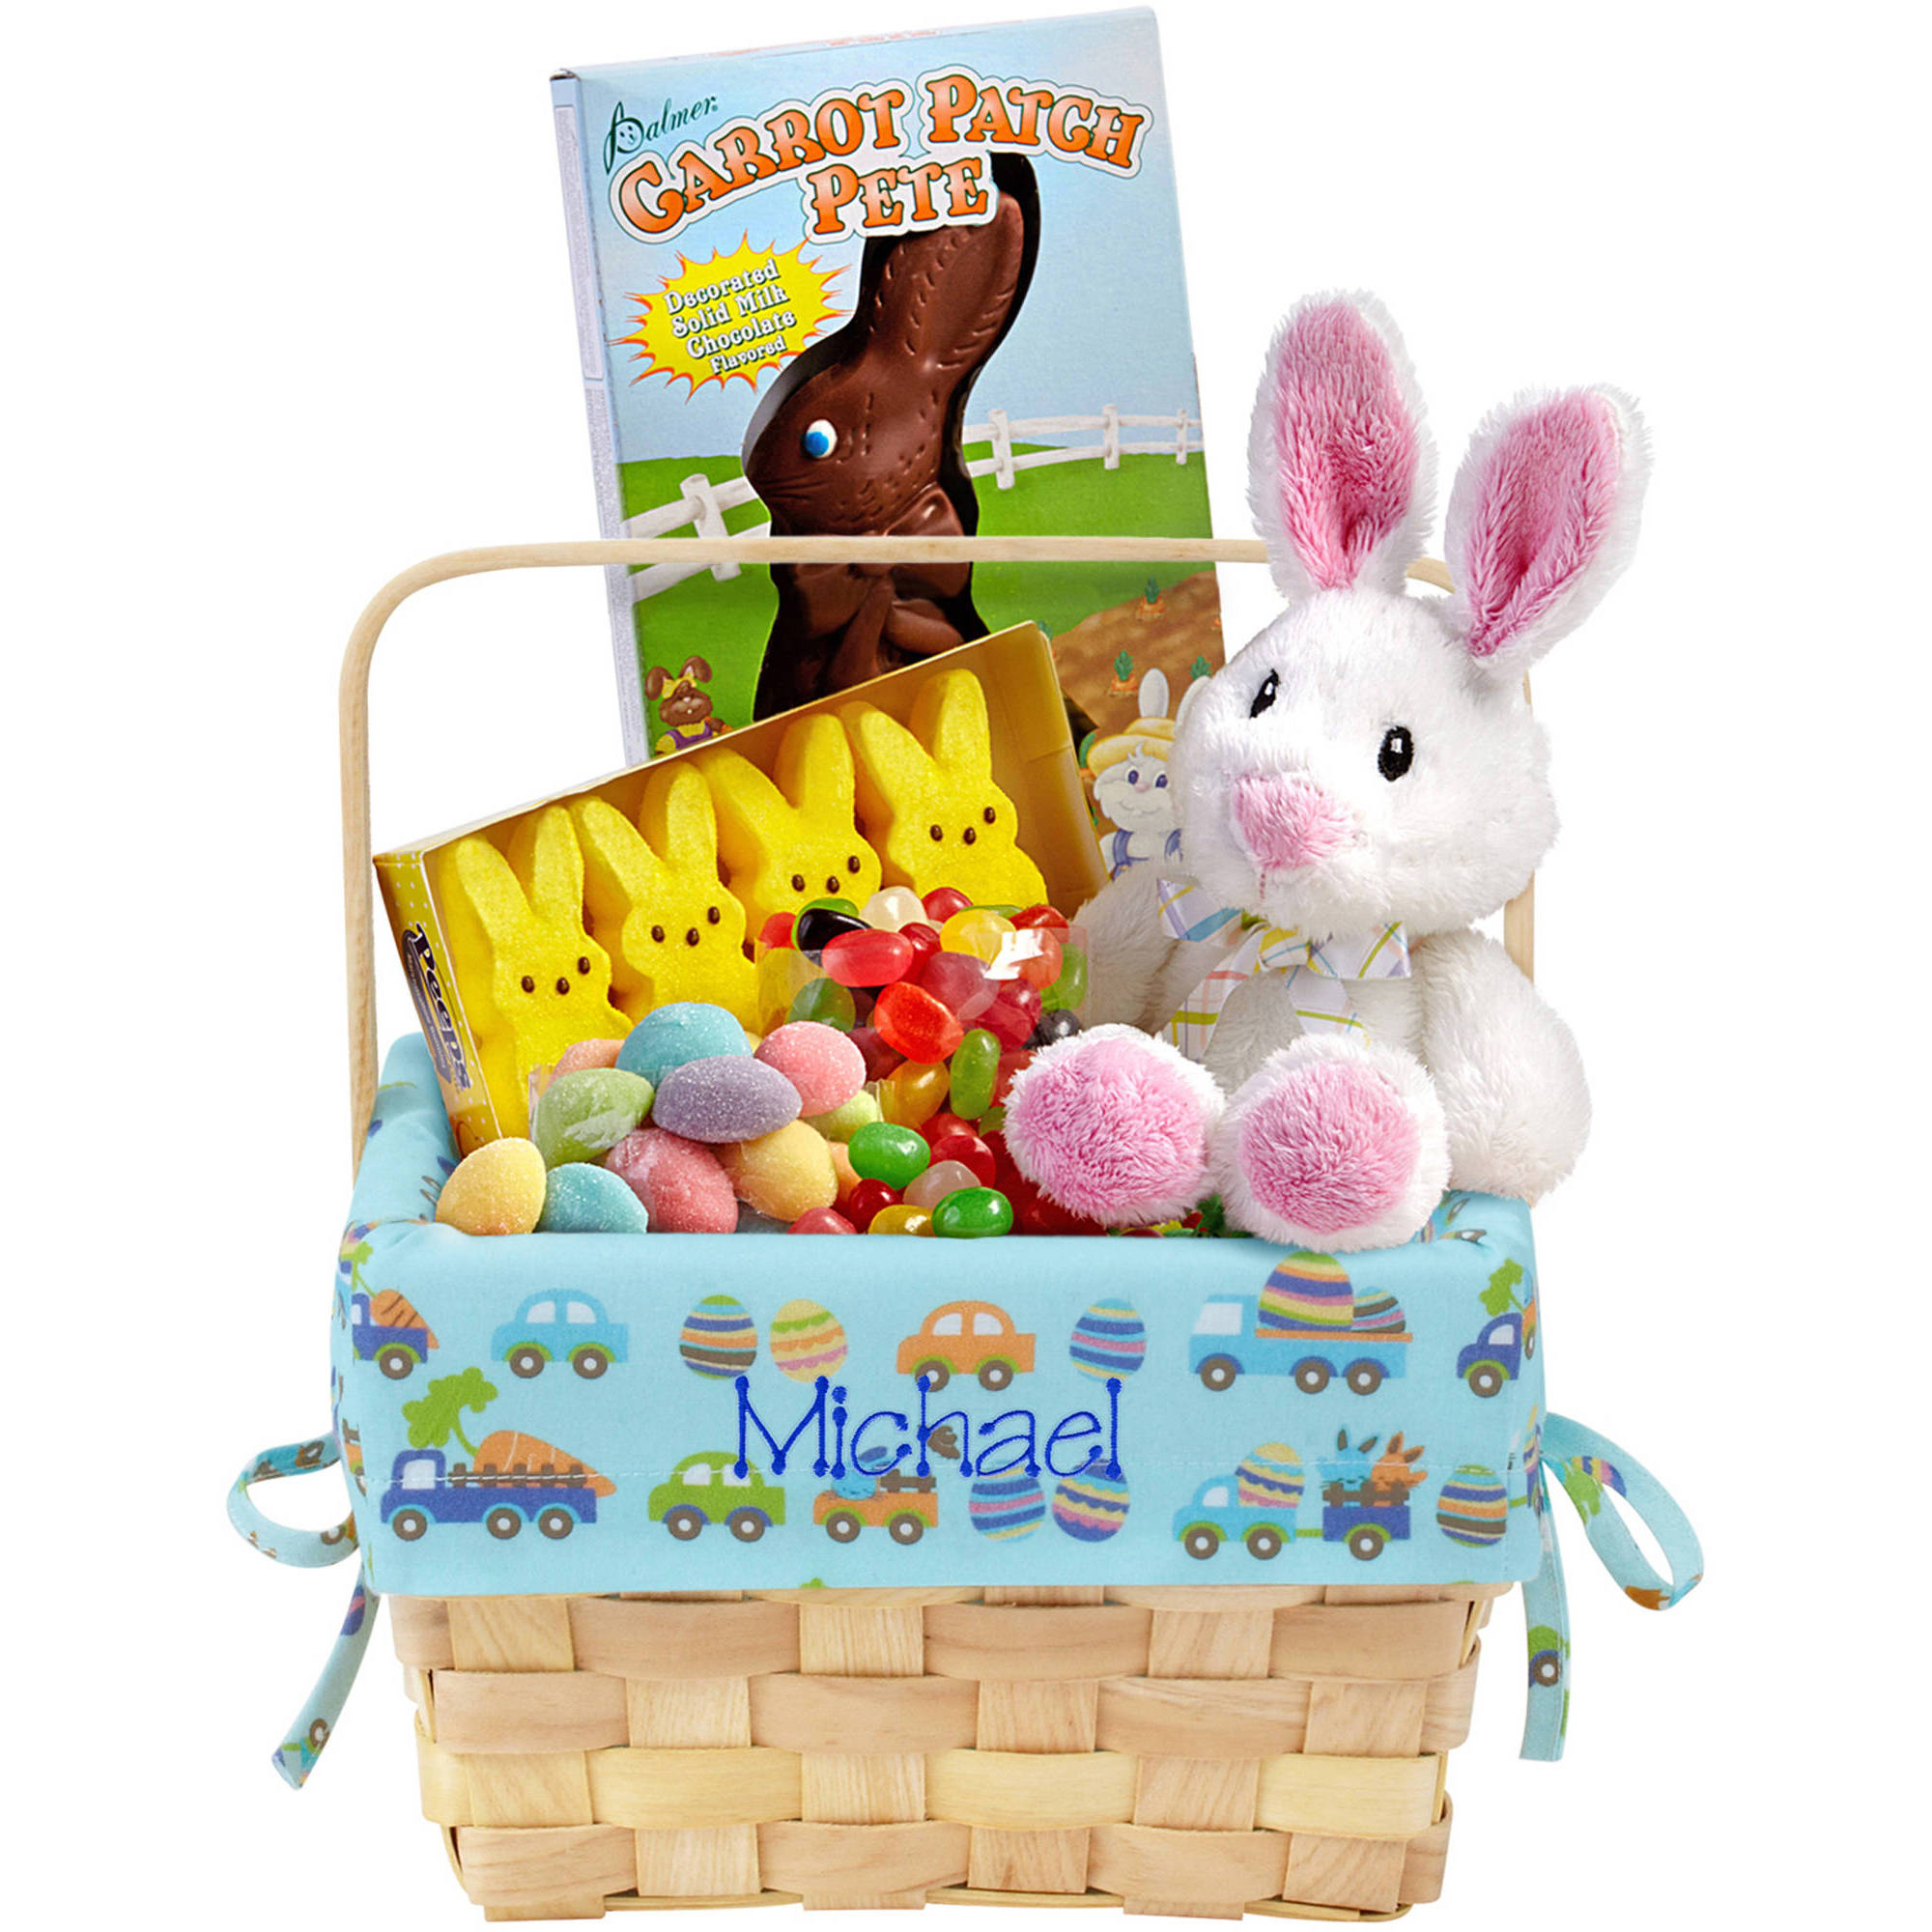 Pick from personalized Easter baskets for babies featuring cuddly plush animals, or soft, snuggly blankets and colorful quilts for wrapping your little one in warmth and comfort. And new parents will love thoughtful baby gifts, baby toys, and handy bibs.